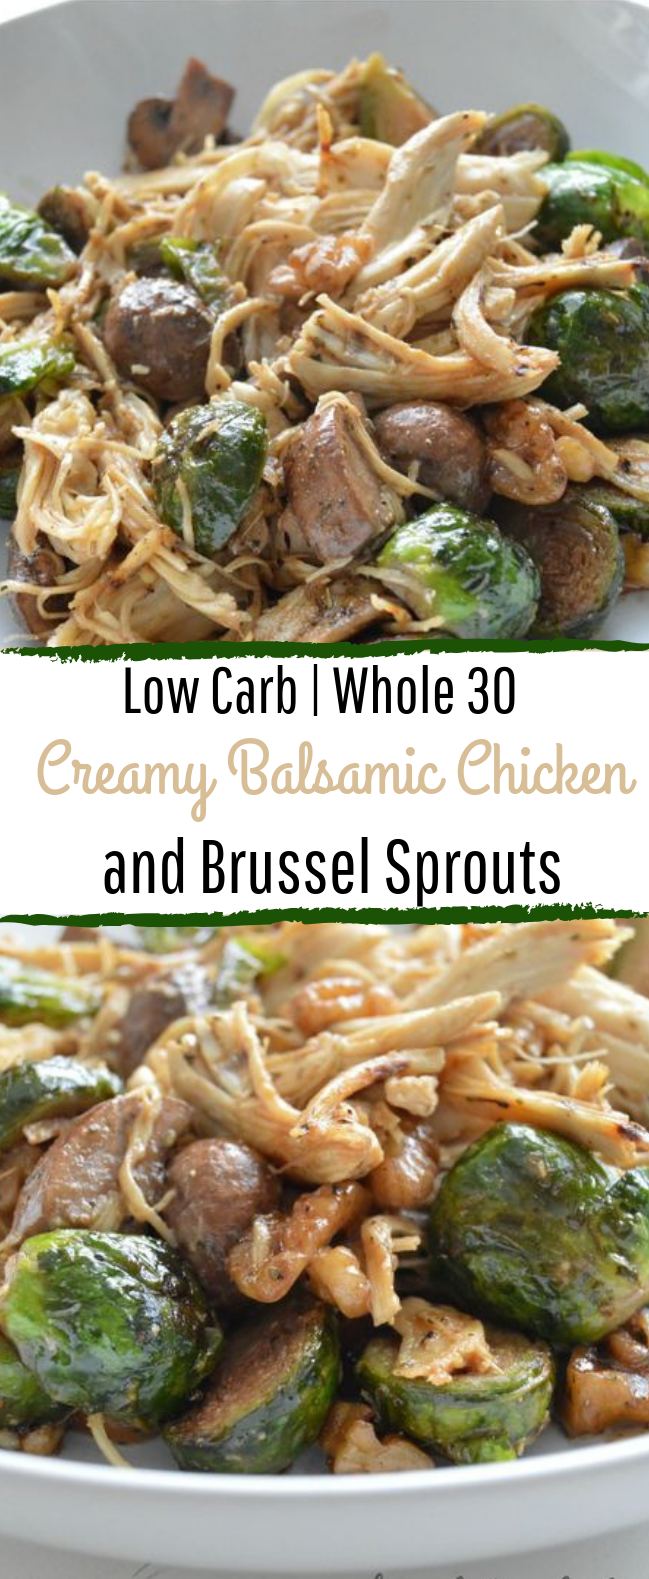 Creamy Balsamic Chicken and Brussel Sprouts (Whole 30) #lowcarb #healthy